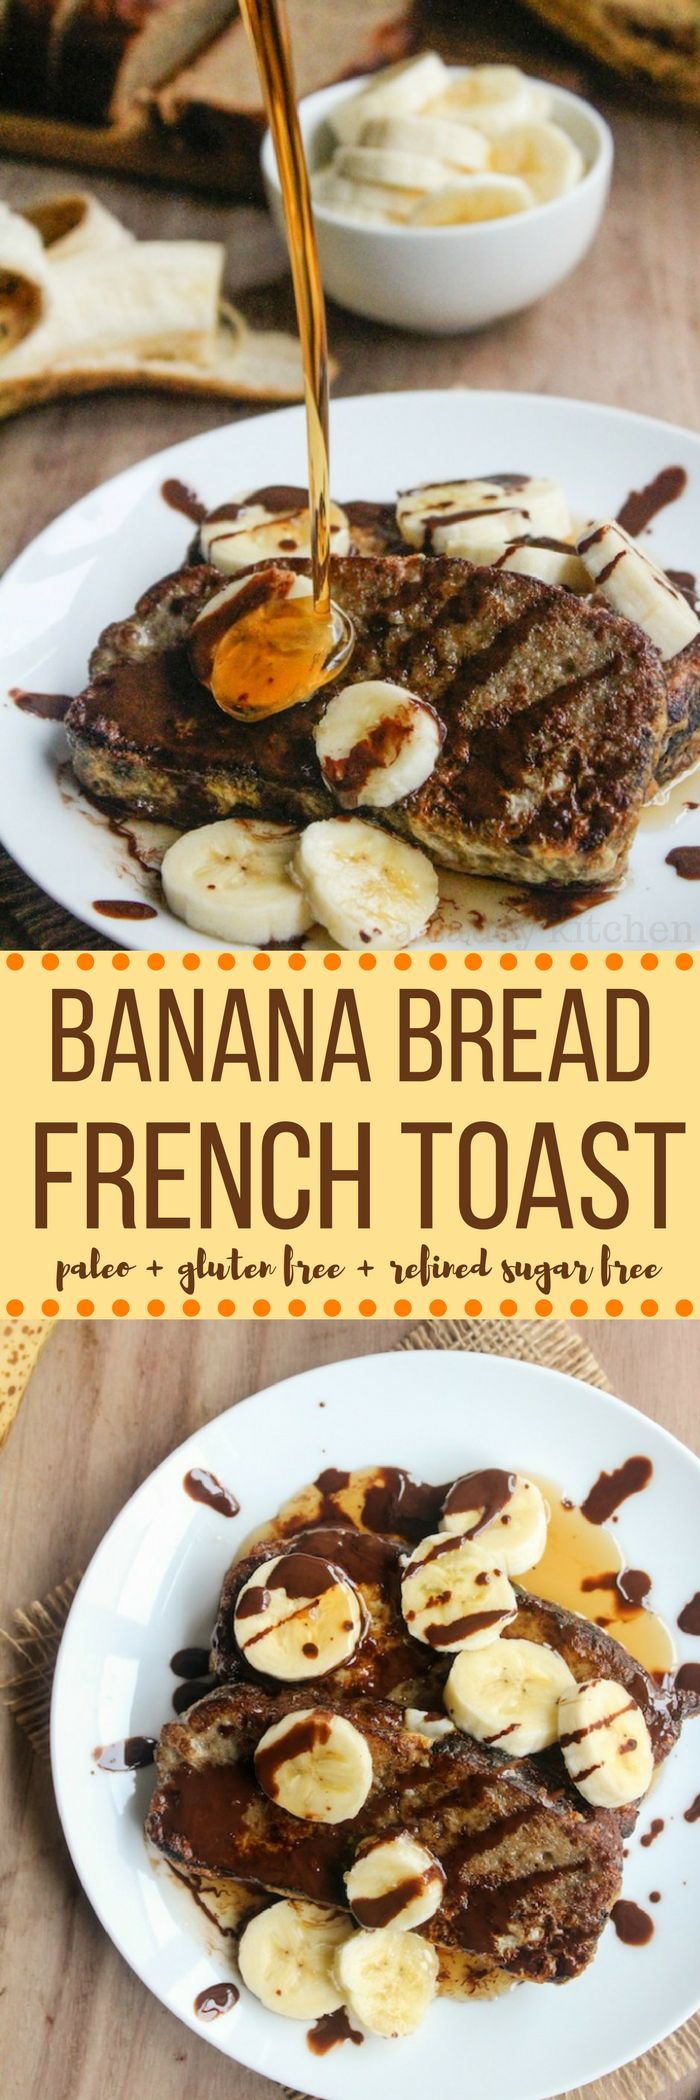 Another reason to love breakfast: paleo banana bread French toast!  Gluten free + grain free + dairy free